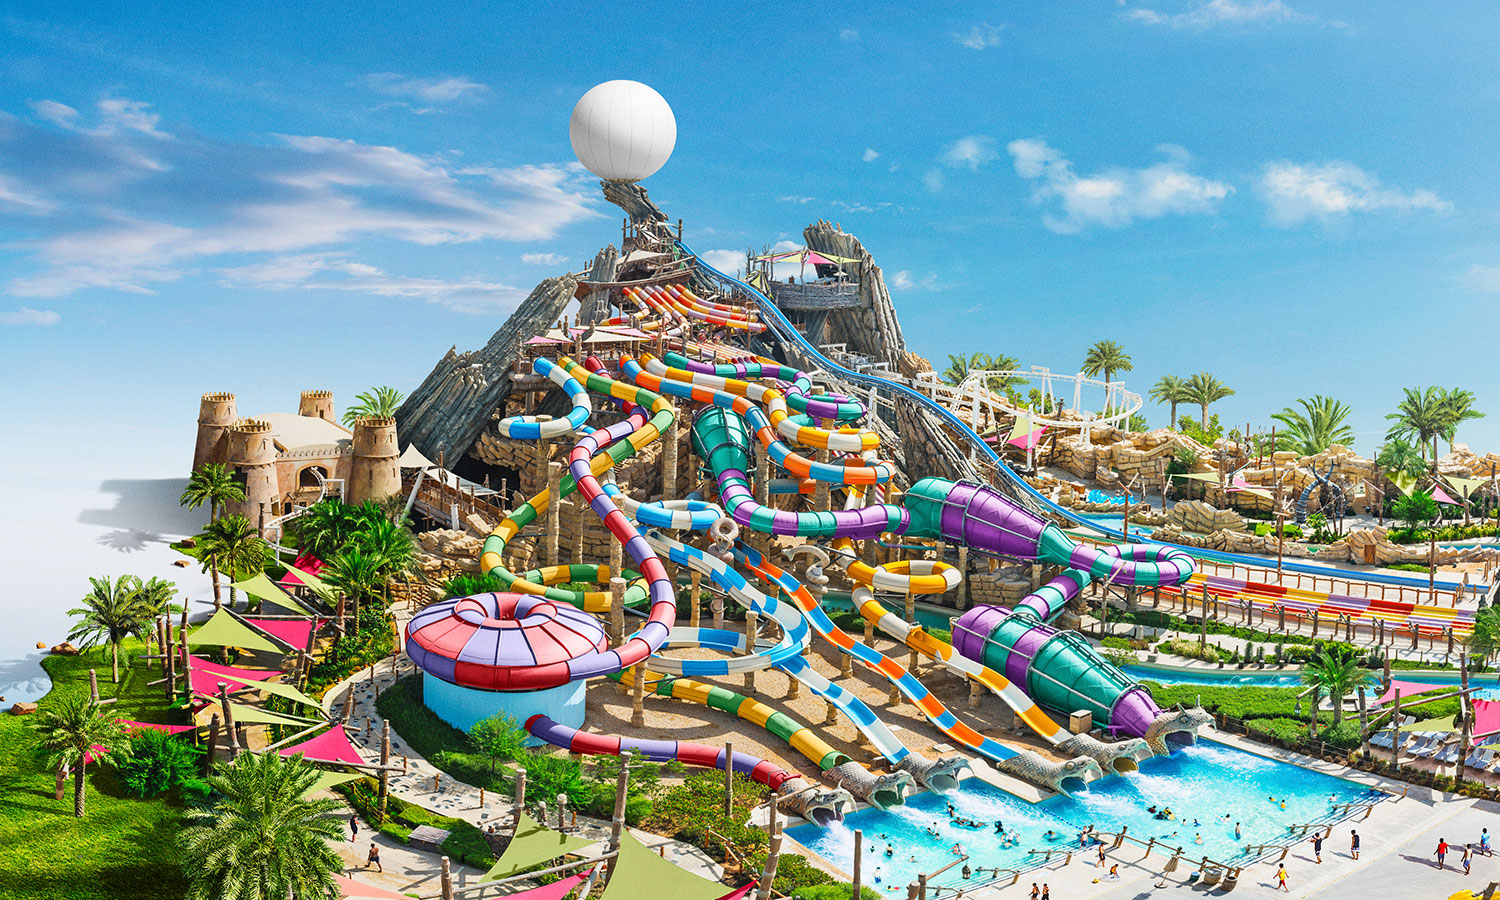 Yas waterworld earns guinness world records title for - Swimming pool construction jobs dubai ...